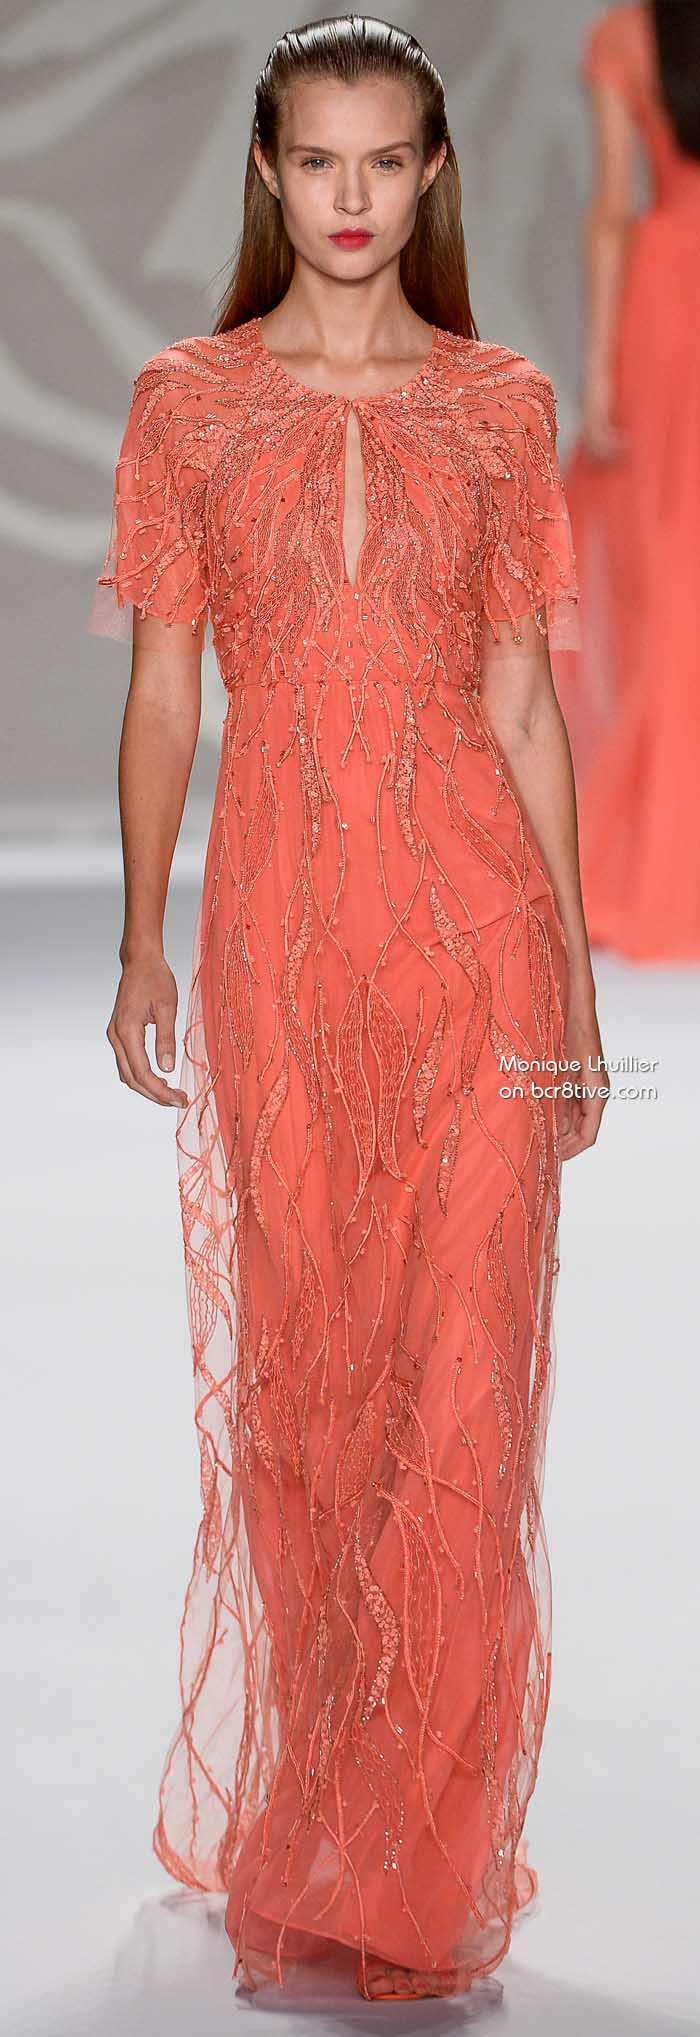 Monique Lhuillier Spring 2014 #NYFW